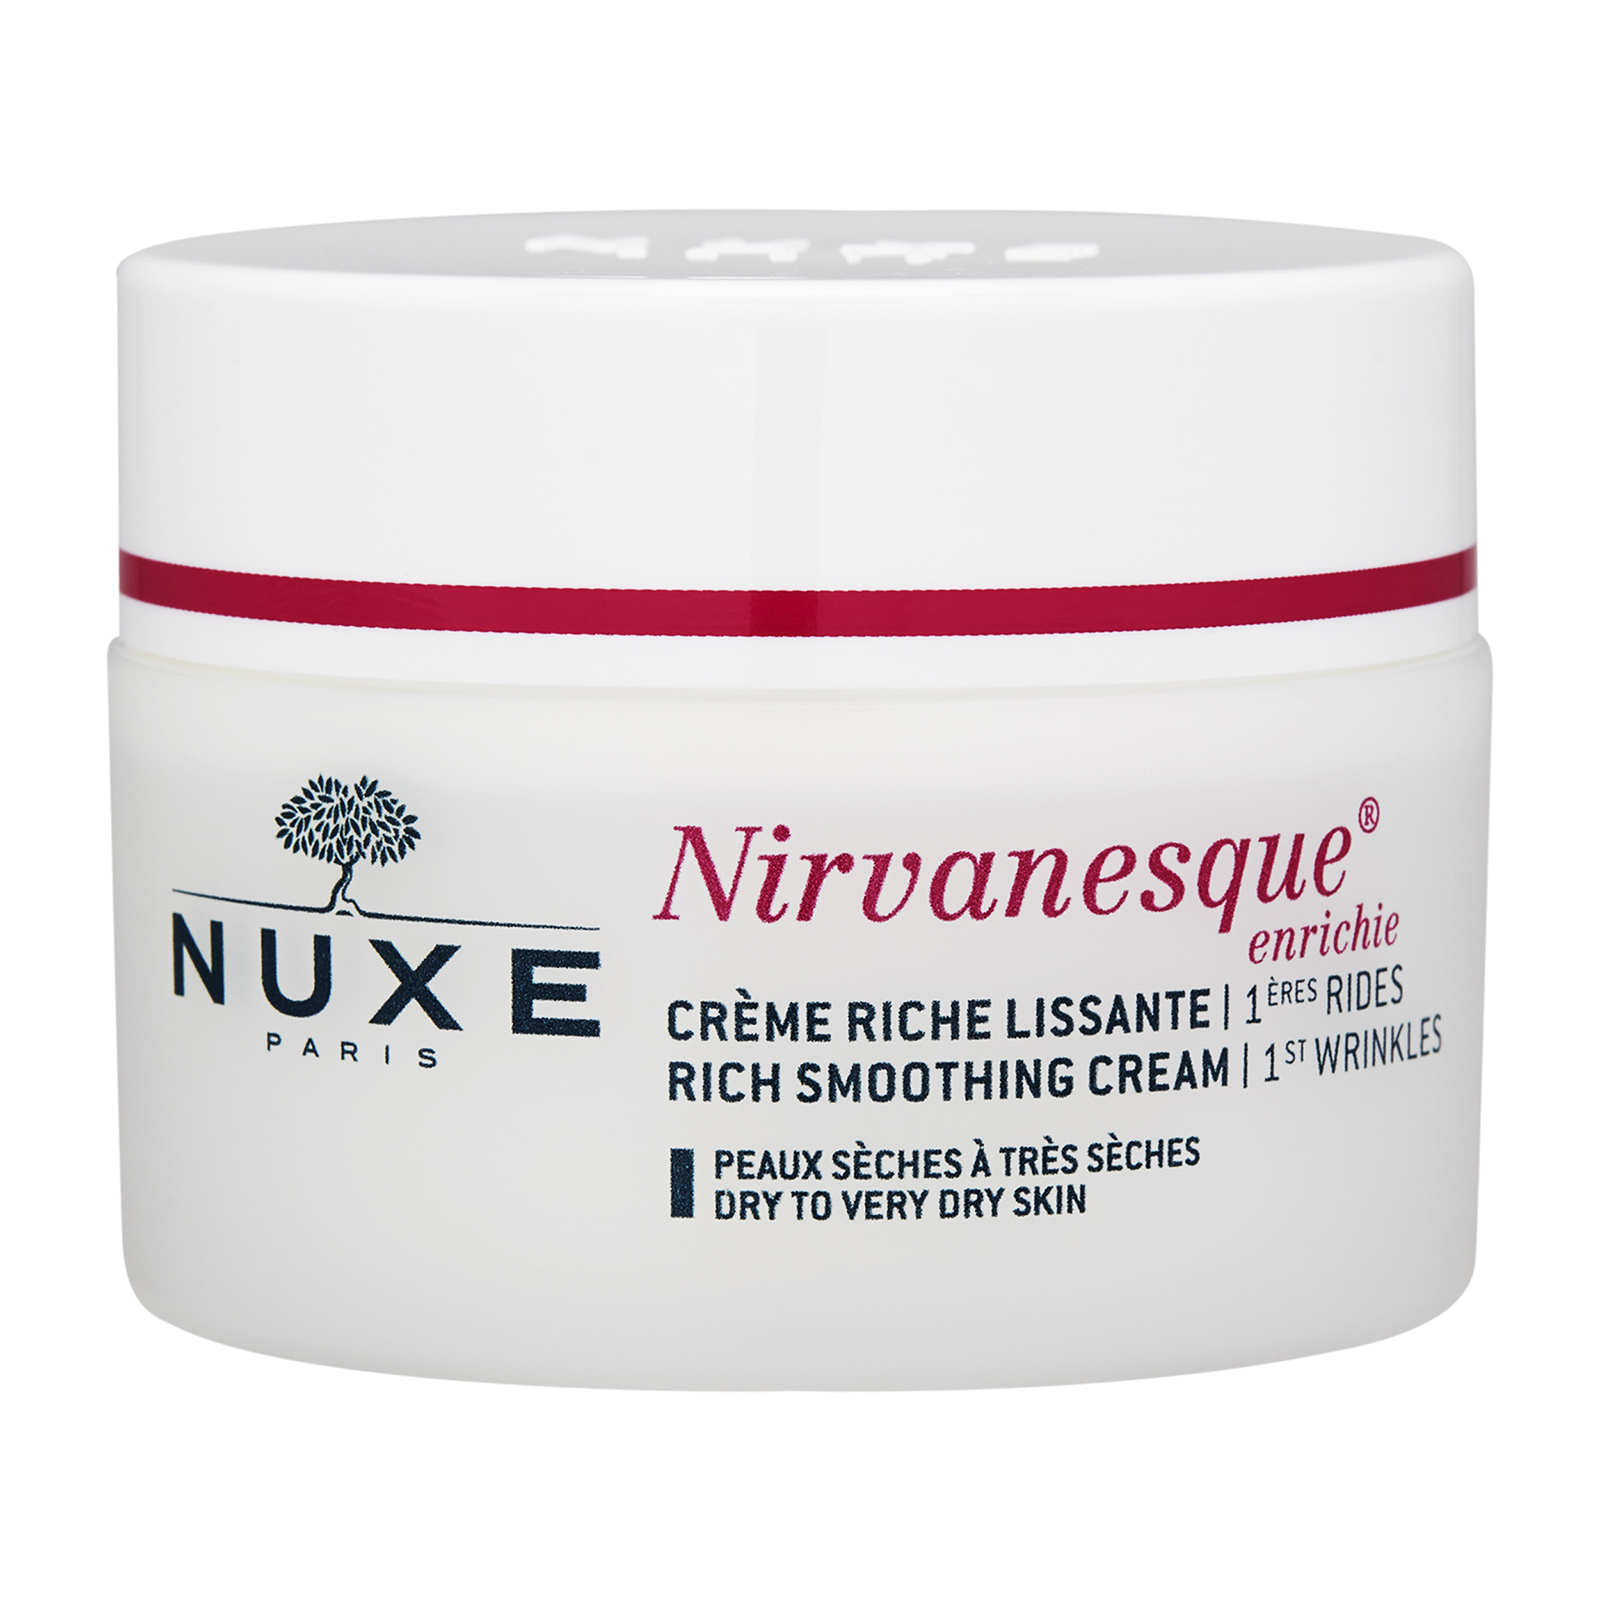 NUXE Nirvanesque  1st Wrinkles Rich Smoothing Cream (Very Dry to Dry Skin) 1.5oz, 50ml from Cosme-De.com